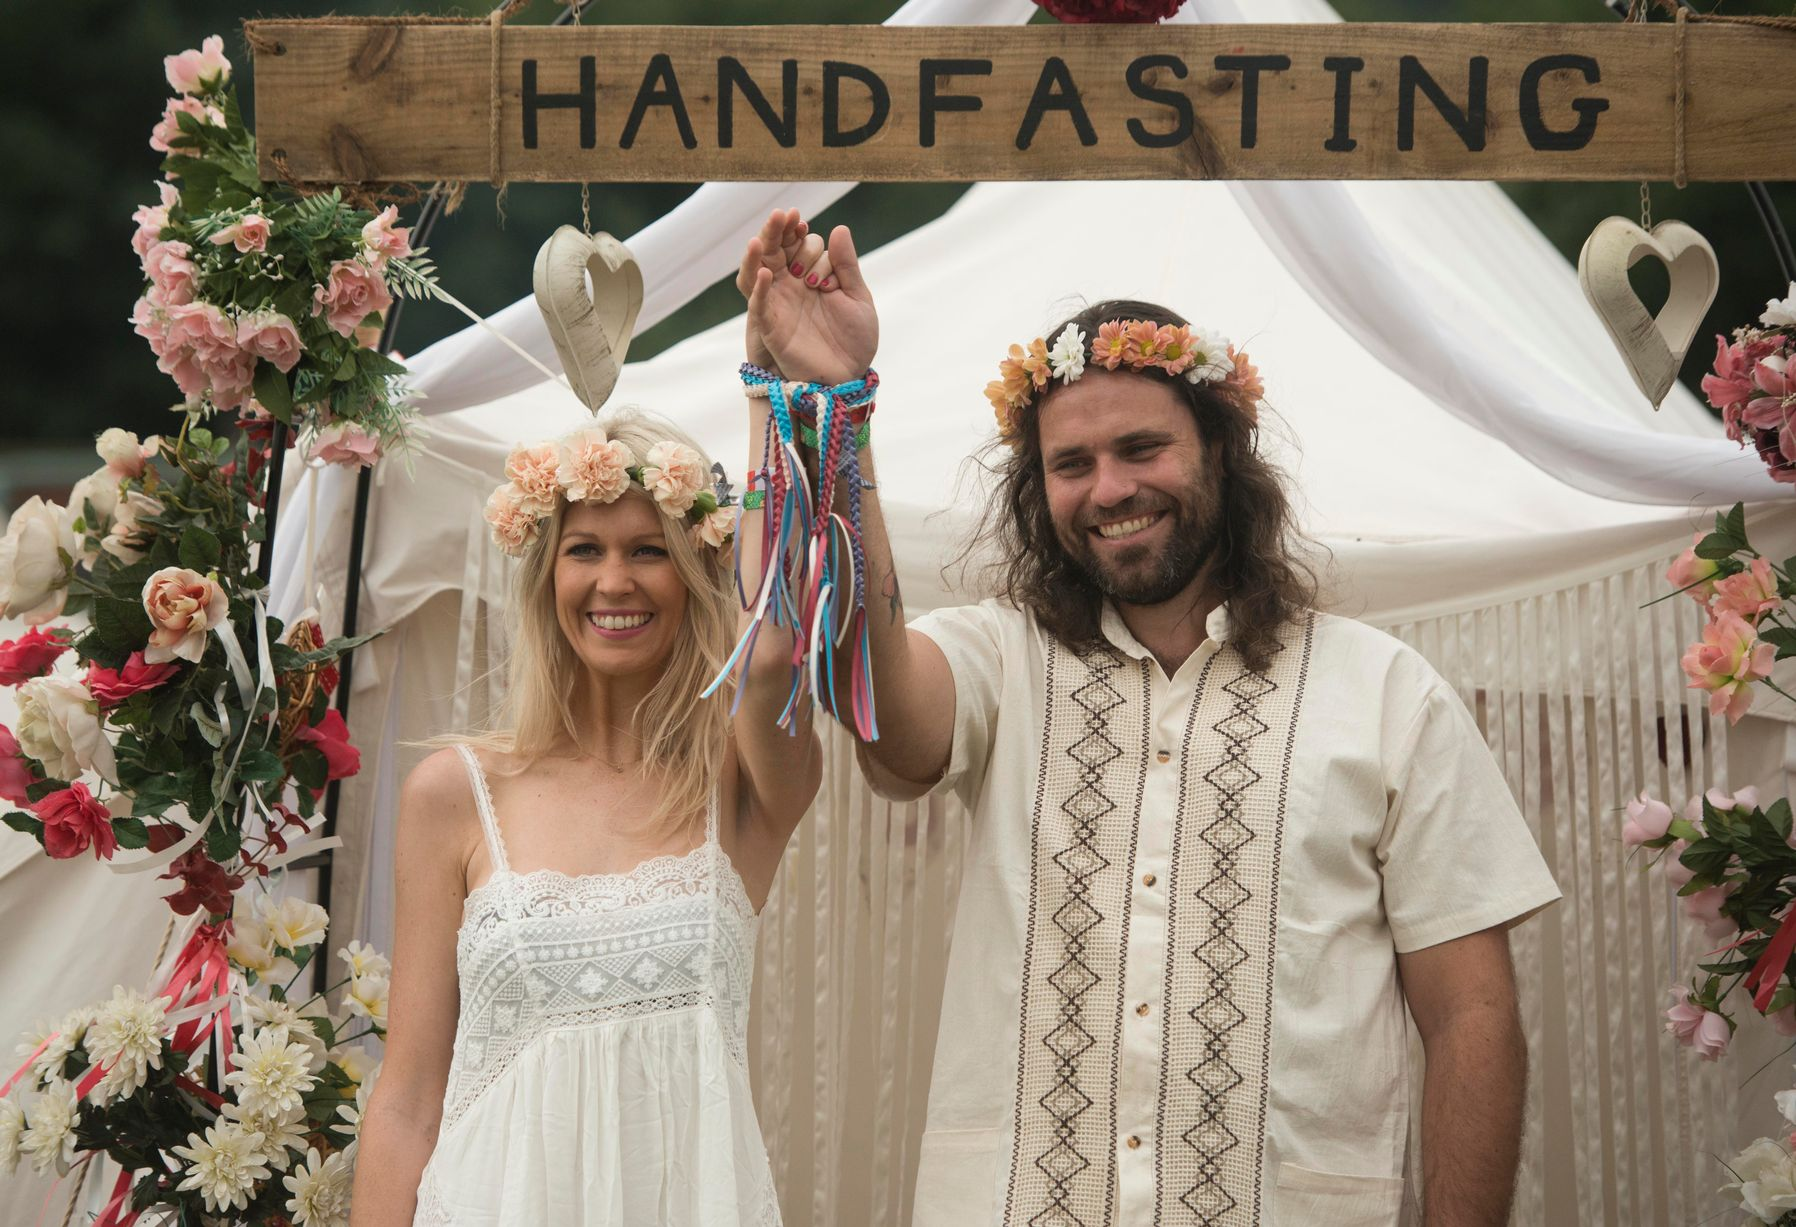 Australian Couple Have 'handfasting' Wedding At